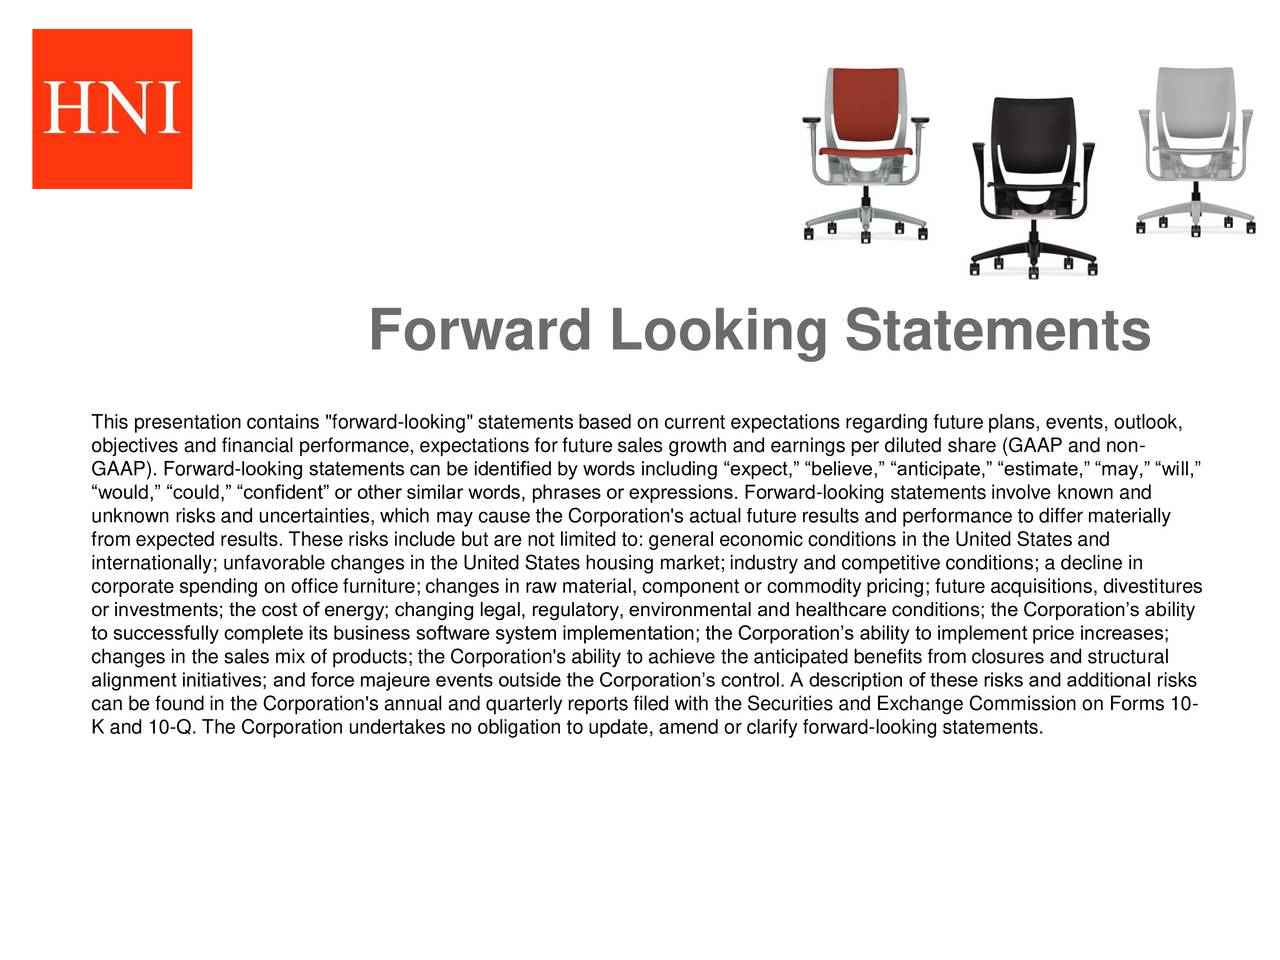 """This presentation contains """"forward-looking"""" statements based on current expectations regarding future plans, events, outlook, objectives and financial performance, expectations for future sales growth and earnings per diluted share (GAAP and non- GAAP). Forward-looking statements can be identified by words including expect, believe, anticipate, estimate, may, will, would, could, confident or other similar words, phrases or expressions. Forward-looking statements involve known and unknown risks and uncertainties, which may cause the Corporation's actual future results and performance to differ materially from expected results. These risks include but are not limited to: general economic conditions in the United States and internationally; unfavorable changes in the United States housing market; industry and competitive conditions; a decline in corporate spending on office furniture; changes in raw material, component or commodity pricing; future acquisitions, divestitures or investments; the cost of energy; changing legal, regulatory, environmental and healthcare conditions; the Corporations ability to successfully complete its business software system implementation; the Corporations ability to implement price increases; changes in the sales mix of products; the Corporation's ability to achieve the anticipated benefits from closures and structural alignment initiatives; and force majeure events outside the Corporations control. A description of these risks and additional risks can be found in the Corporation's annual and quarterly reports filed with the Securities and Exchange Commission on Forms 10- K and 10-Q. The Corporation undertakes no obligation to update, amend or clarify forward-looking statements."""